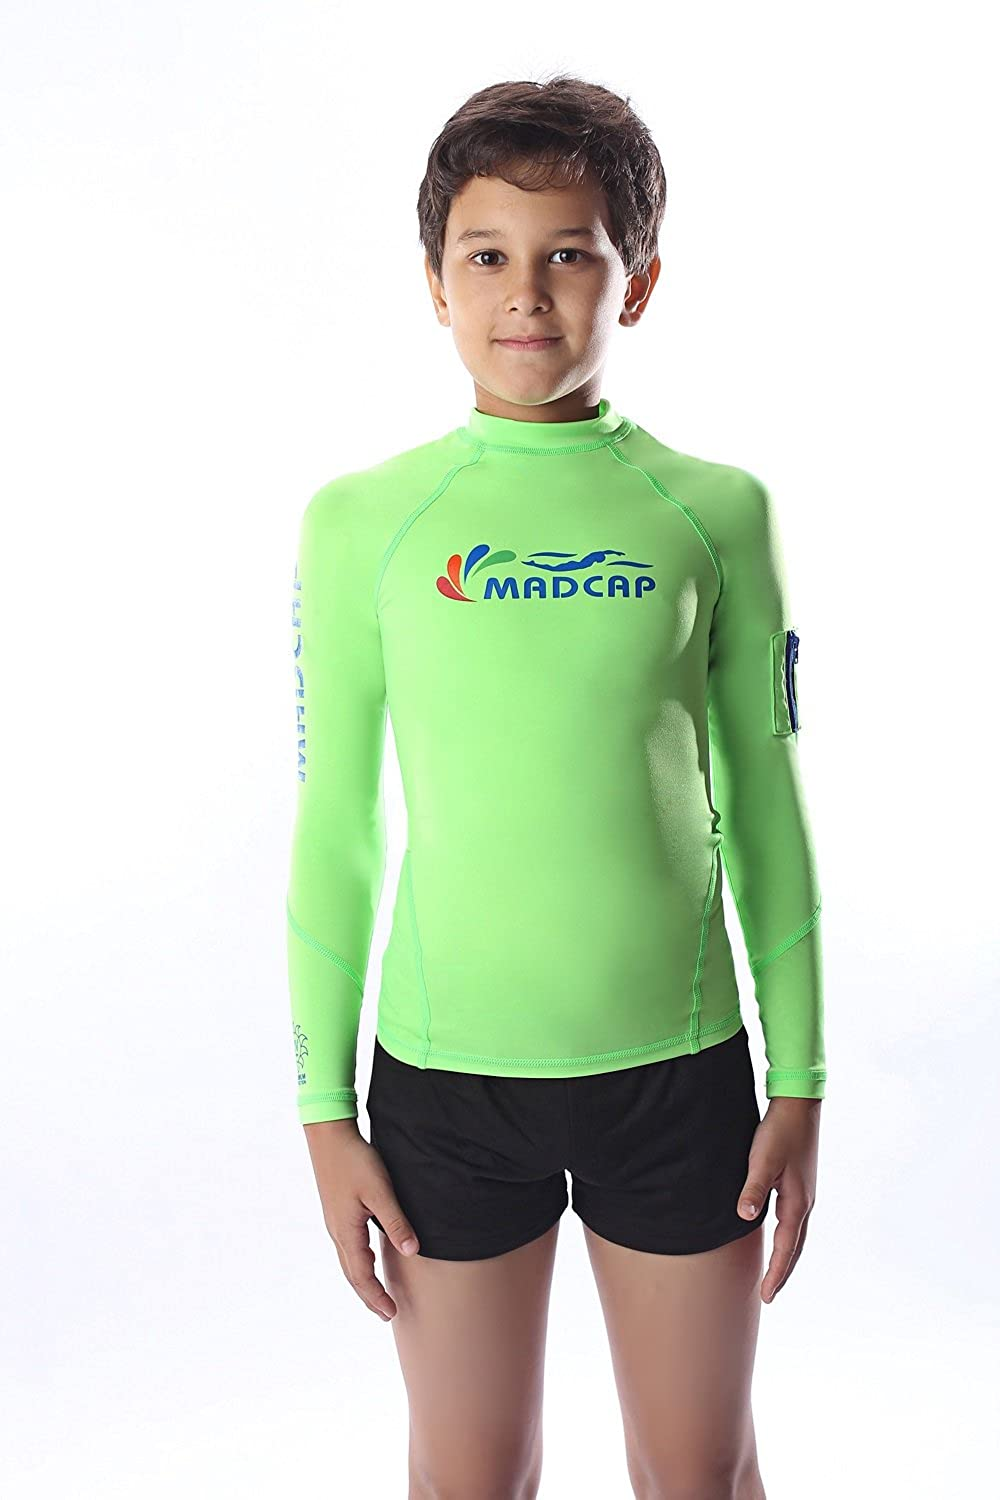 MADCAP Boys Rash Guard Long Sleeve Swimwear UV Sun Protection Swimsuits Shirt Top YONGLIN